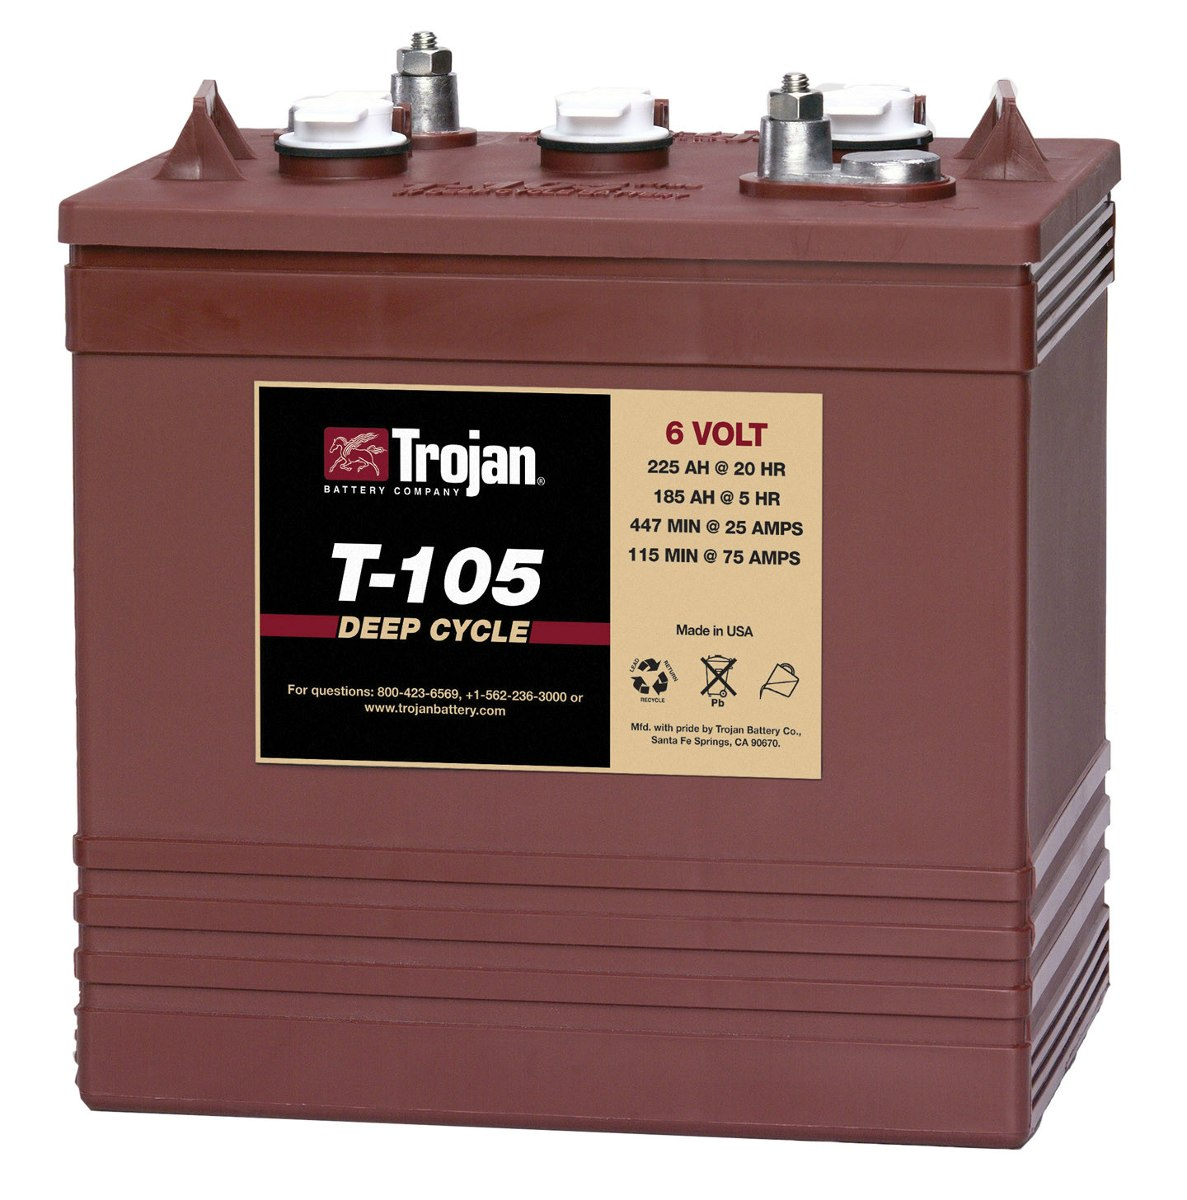 T105 Trojan 6 Volt Golf Cart Battery